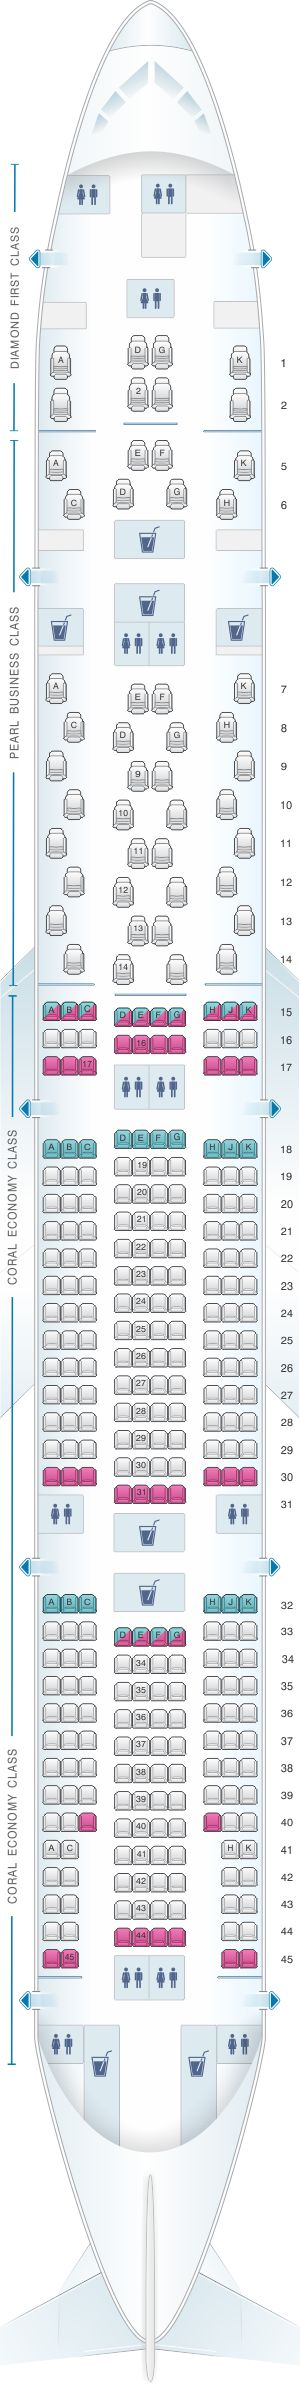 Seat Map Etihad Airways Boeing B777 300ER 3 class